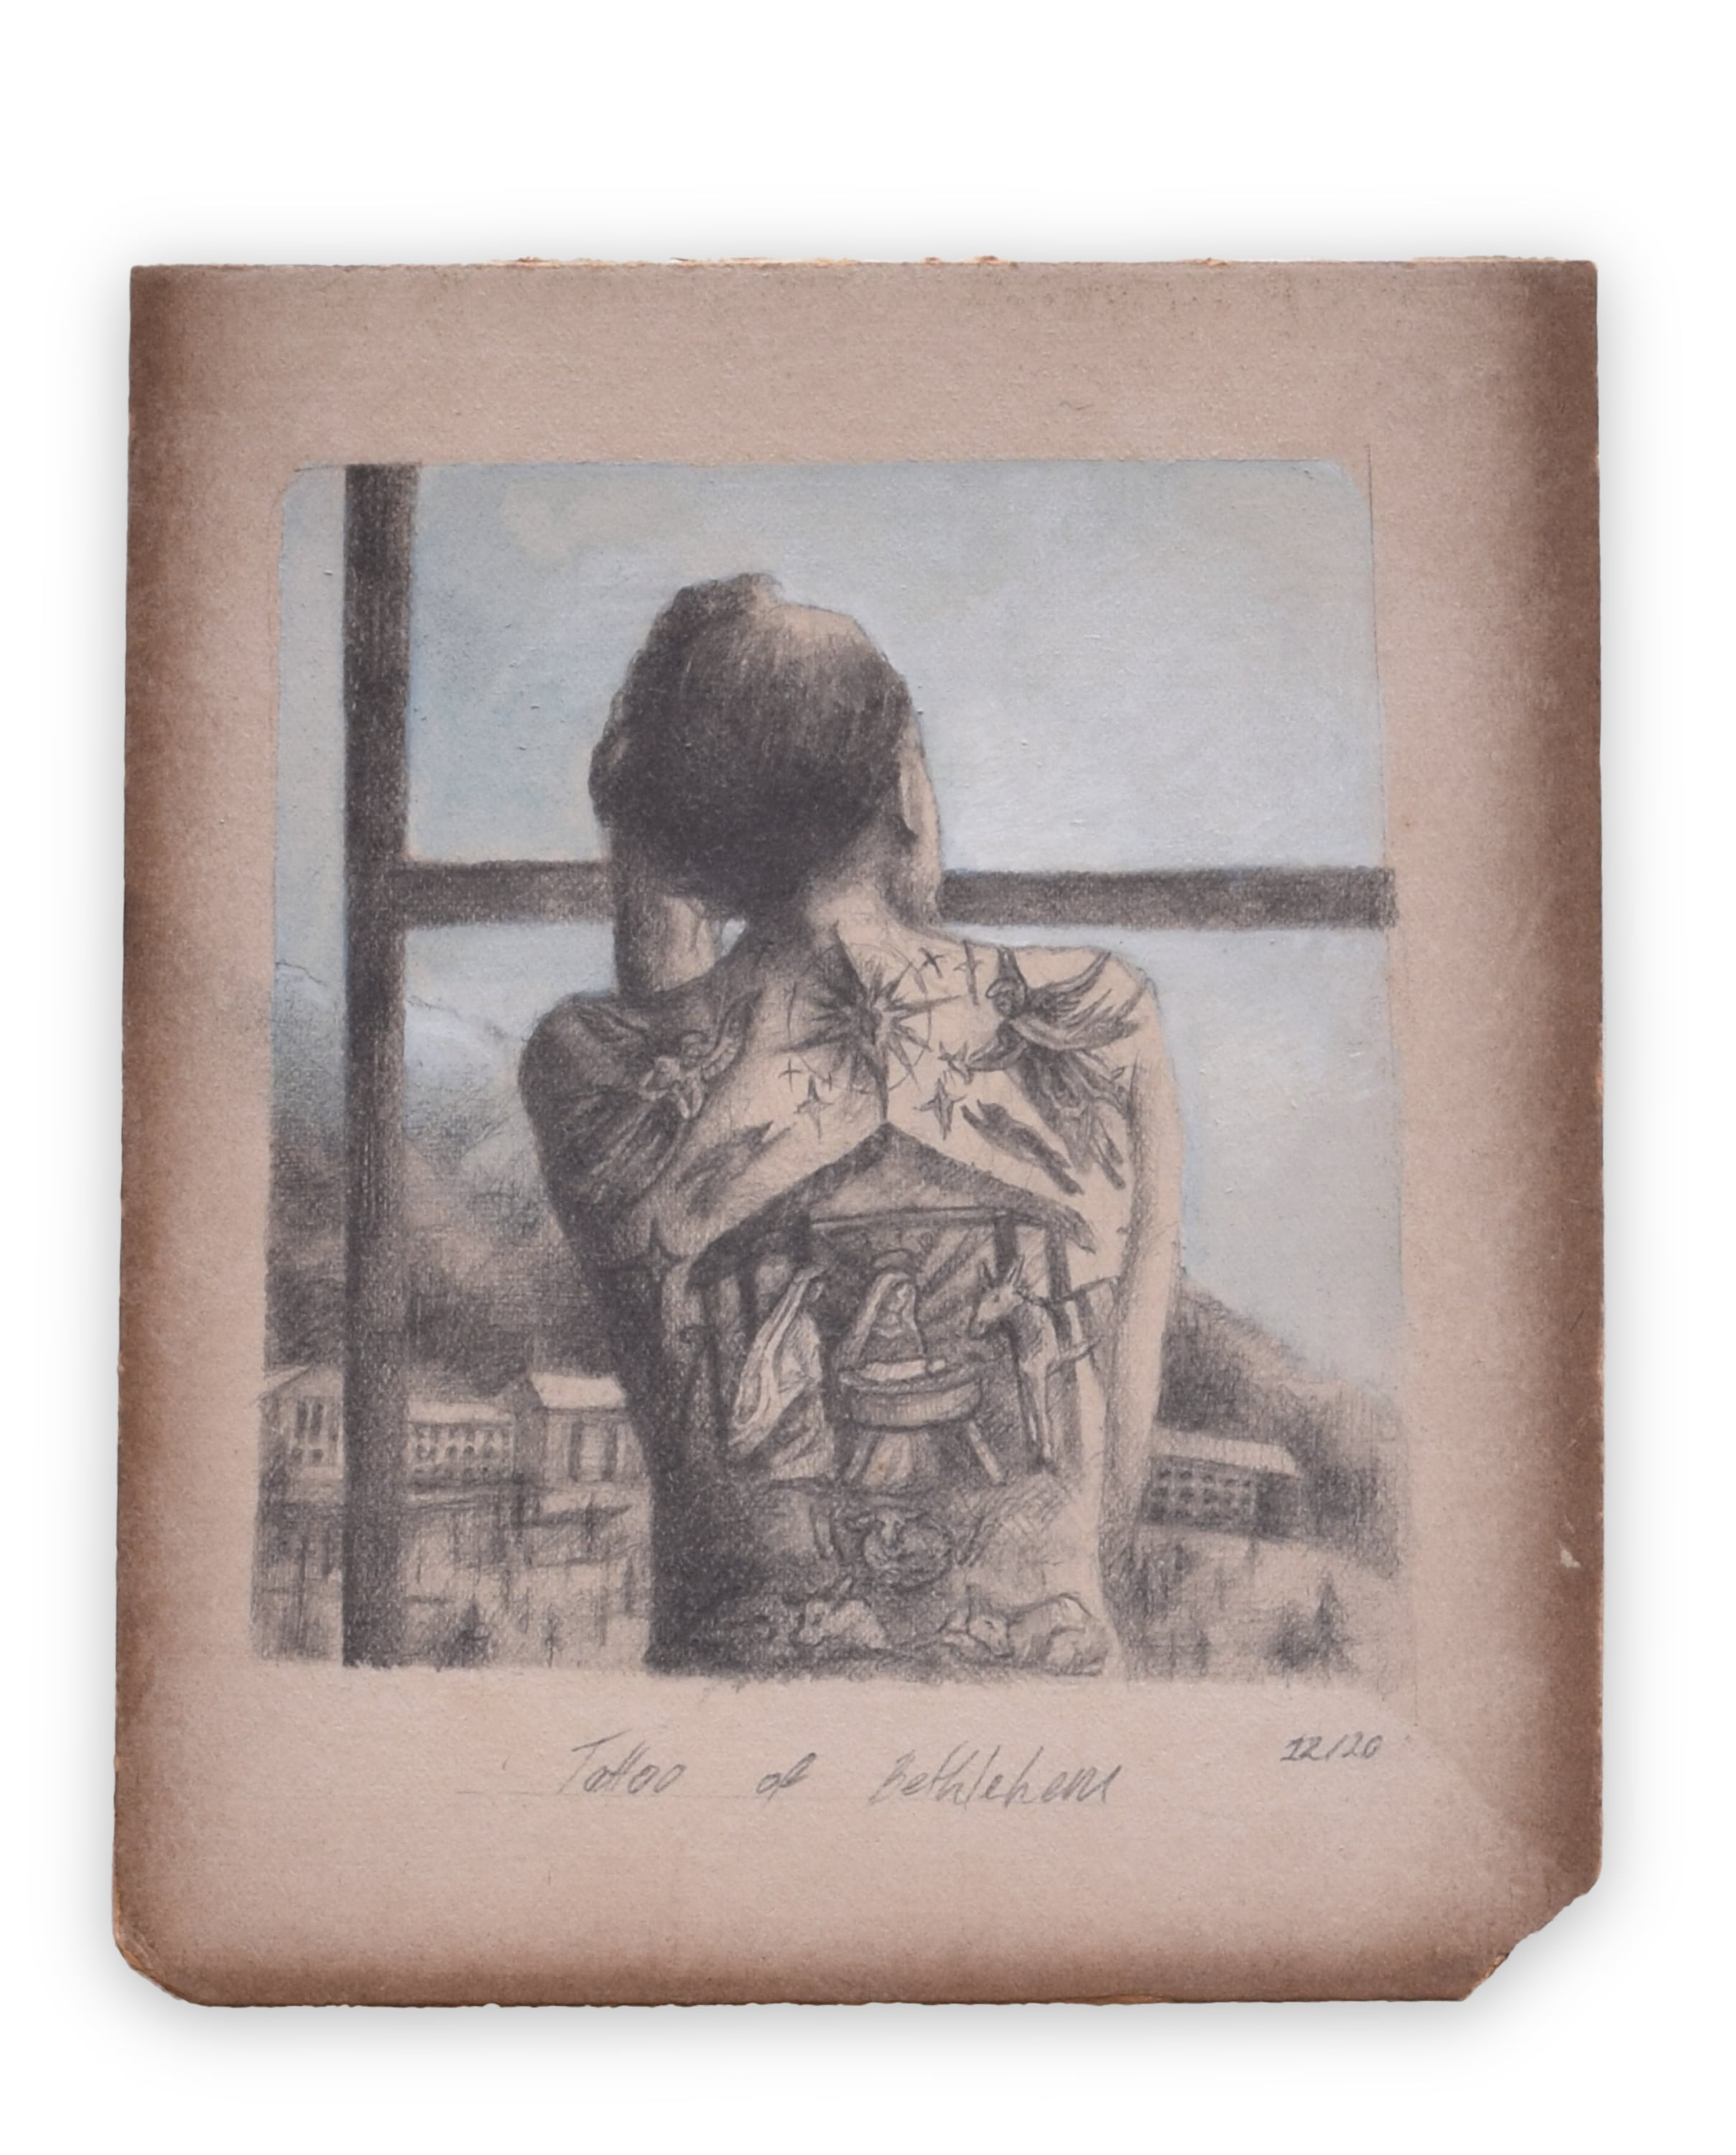 The back of a woman displays tattoos of a barn, the Virgin Mary, angels, animals and a star. She overlooks an old power plant in a small Norwegian town.